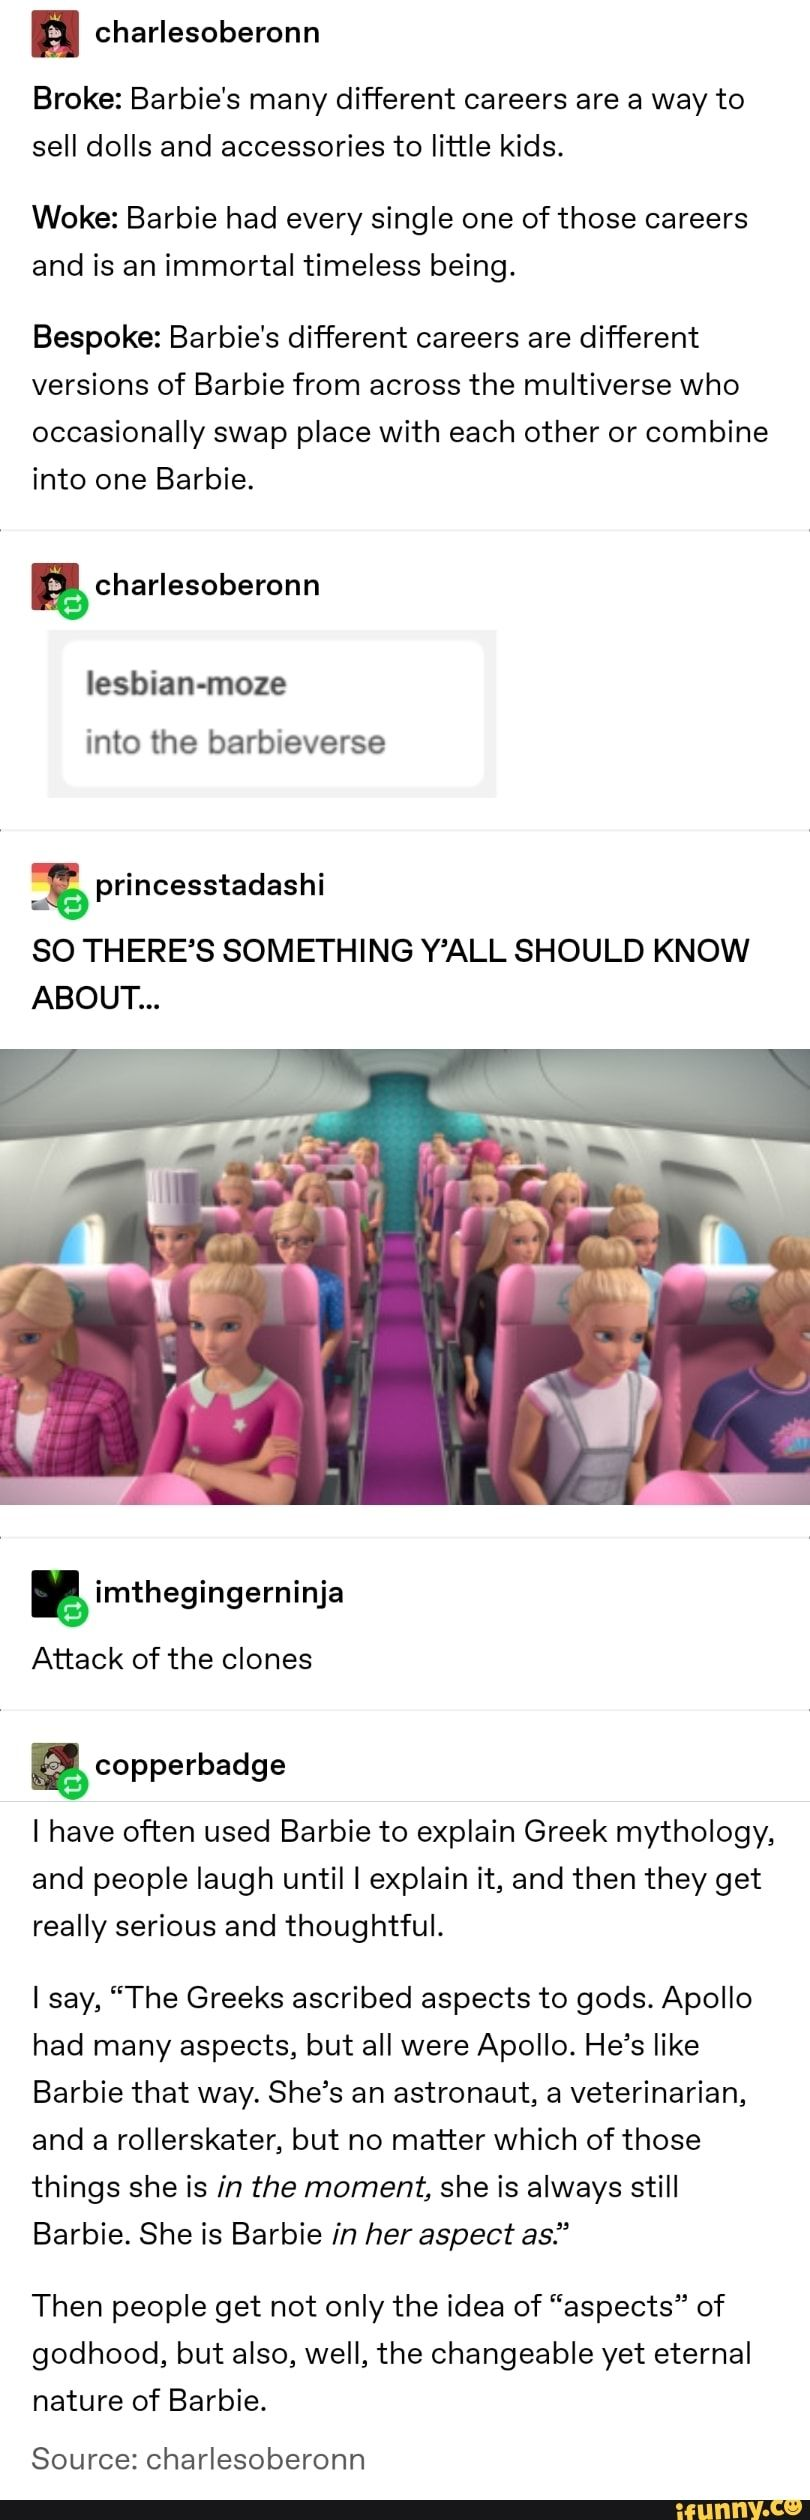 Picture memes LUFoHll37 — iFunny #barbie